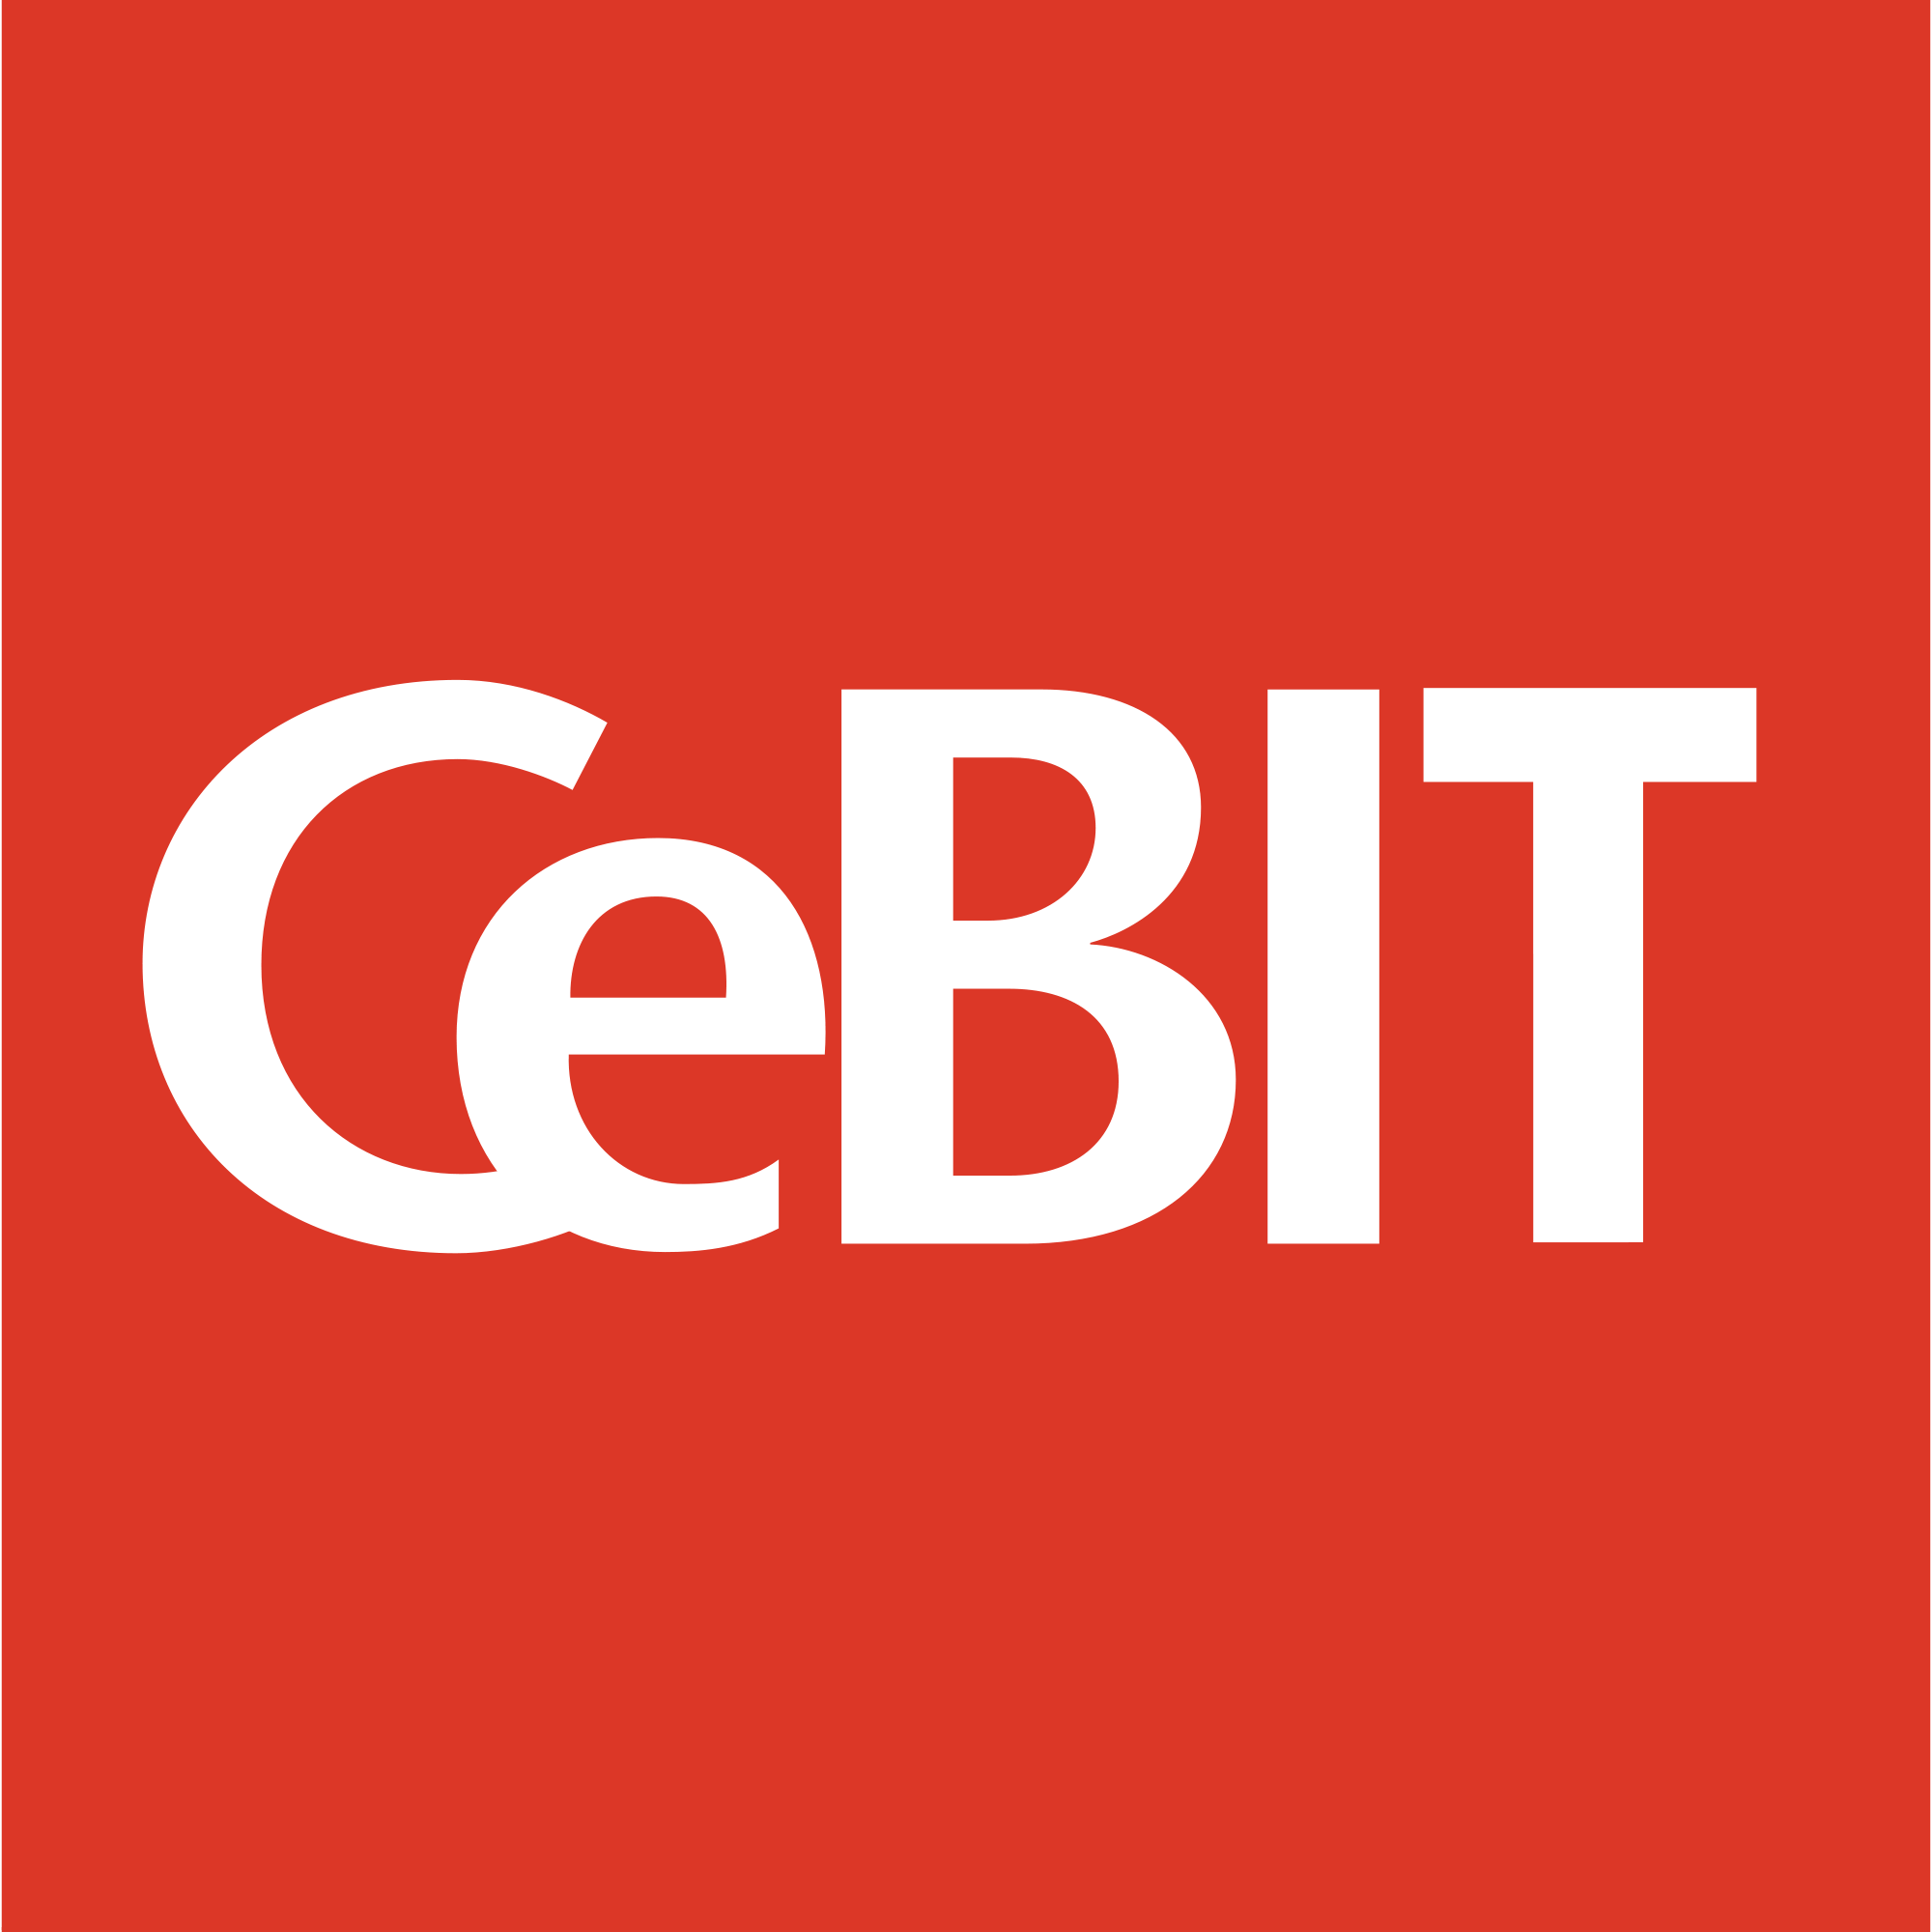 CeBIT 2016 – IT-Messe